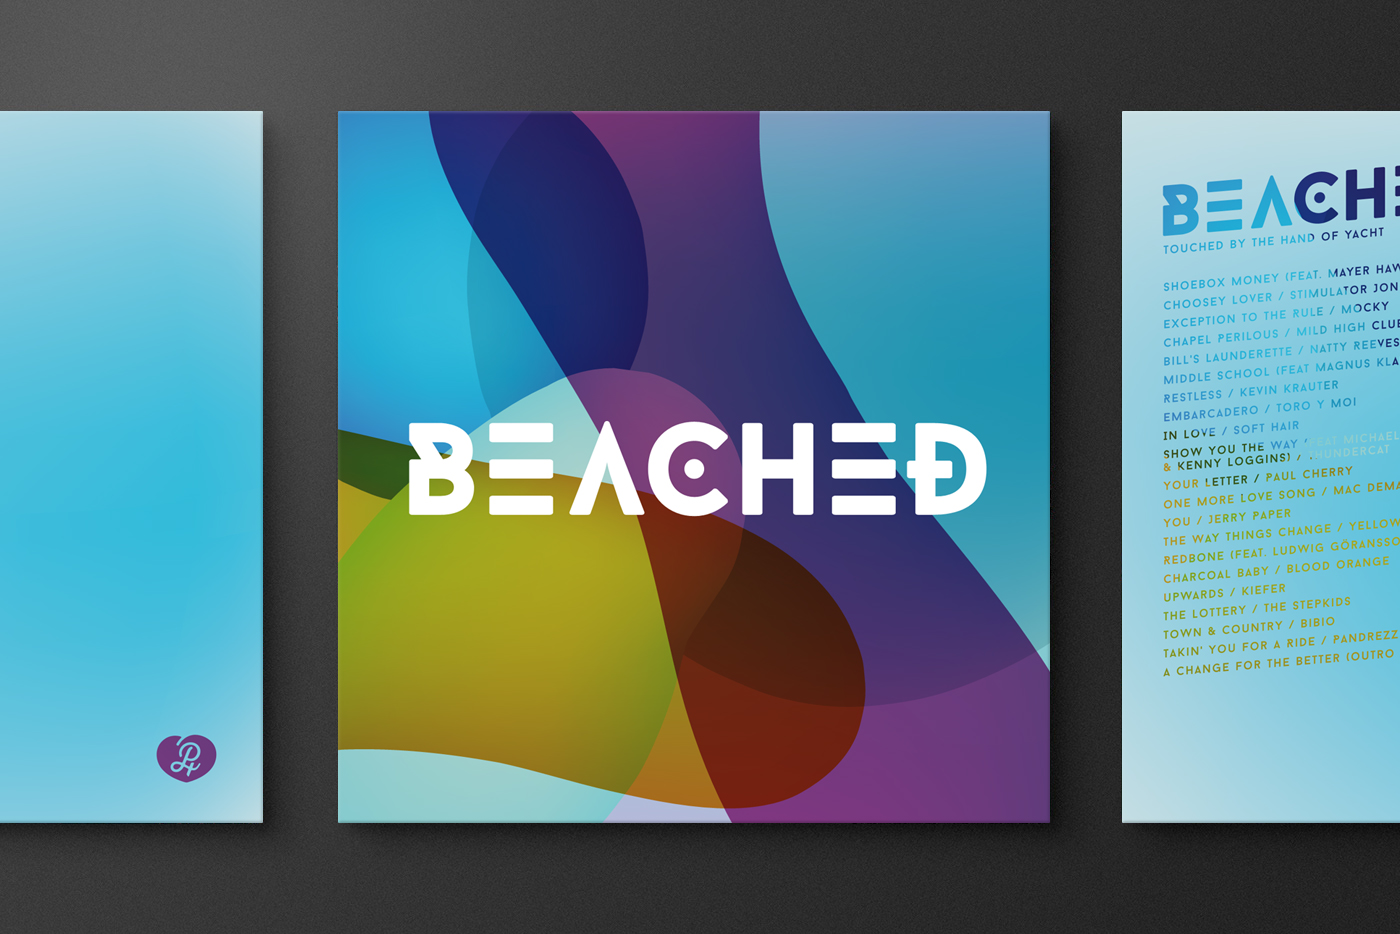 Beached // Touched By The Hand Of Yacht